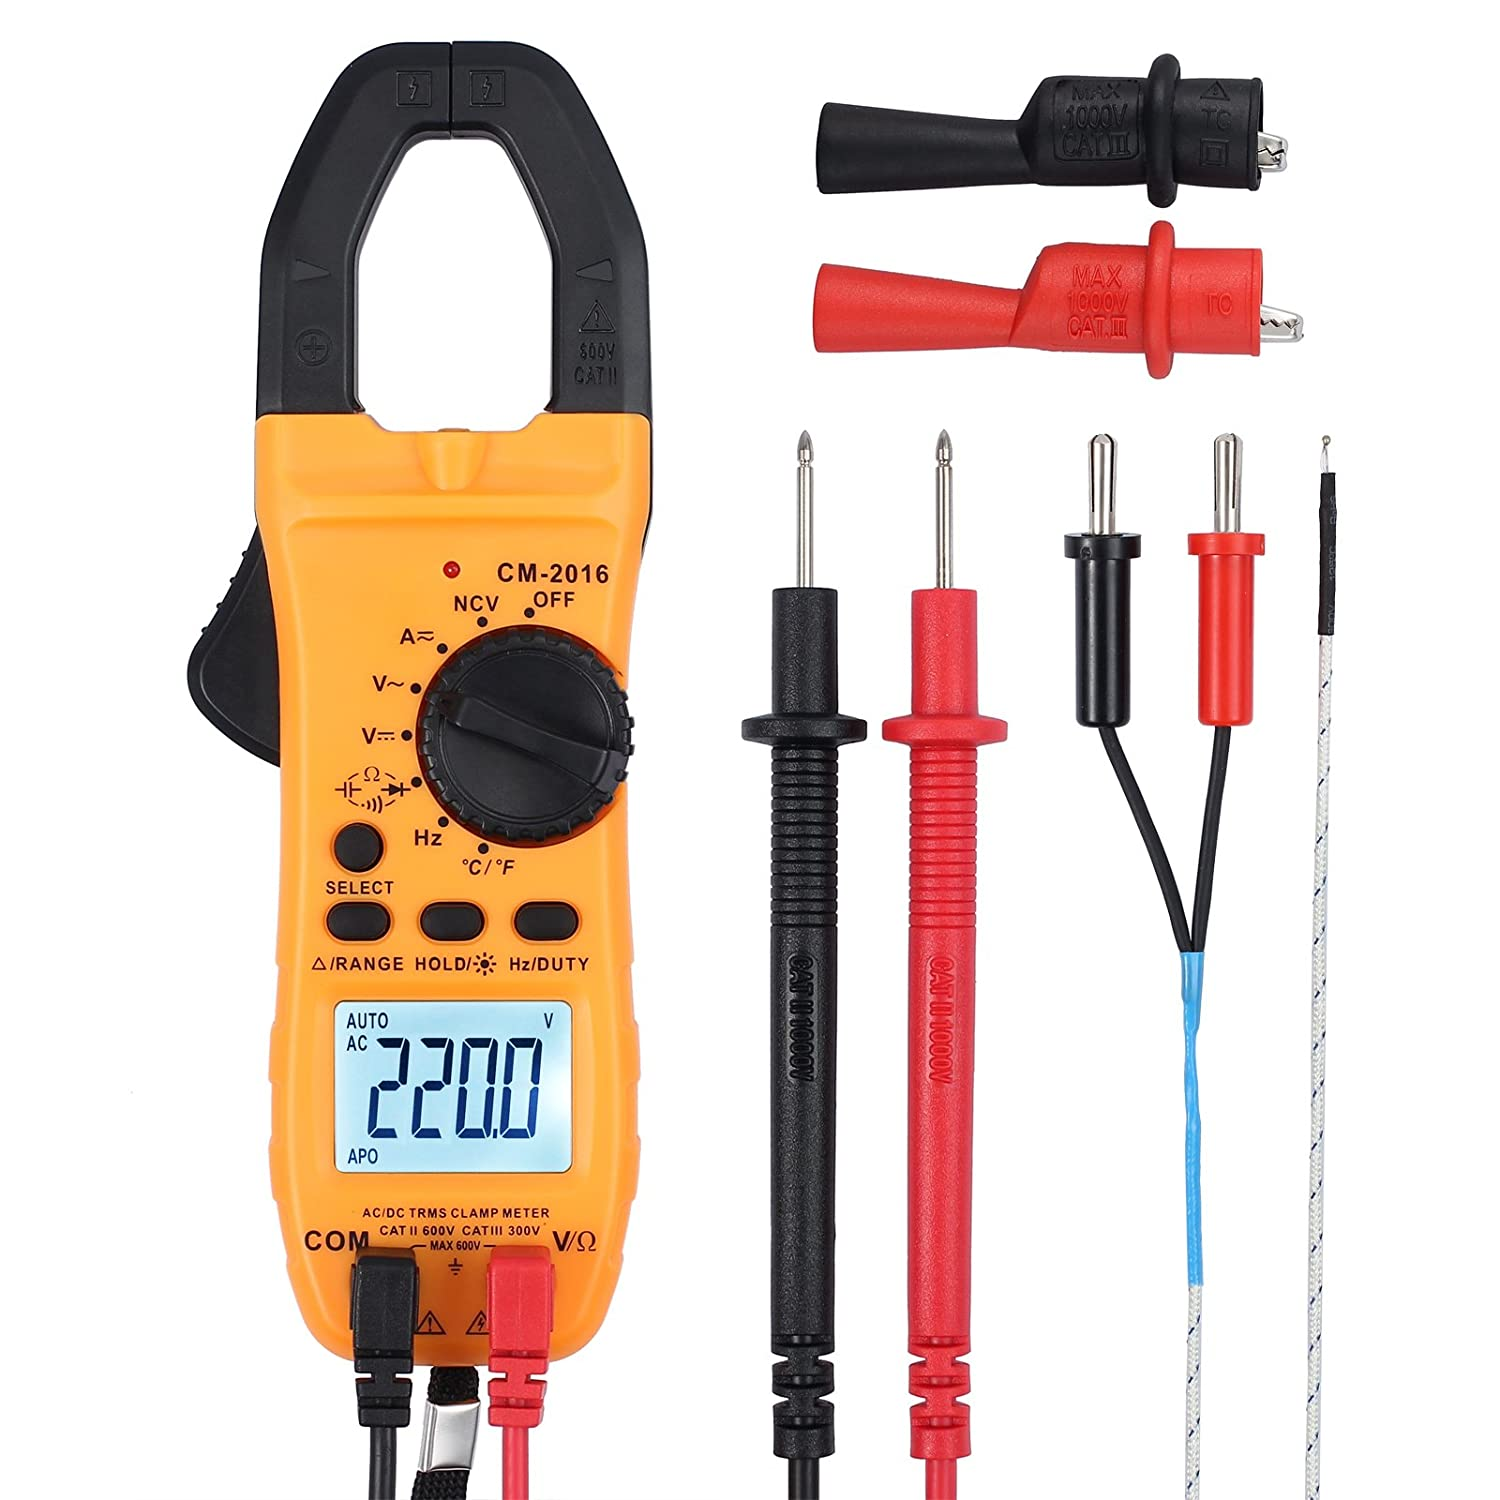 Proster Digital Clamp Meter Auto-Ranging Multimeter Clamp TRMS 6000 Counts with NCV AC/DC Voltage Current Continuity Capacitance Resistance Frequency Diode Temperature Hz Proster Trading Limited